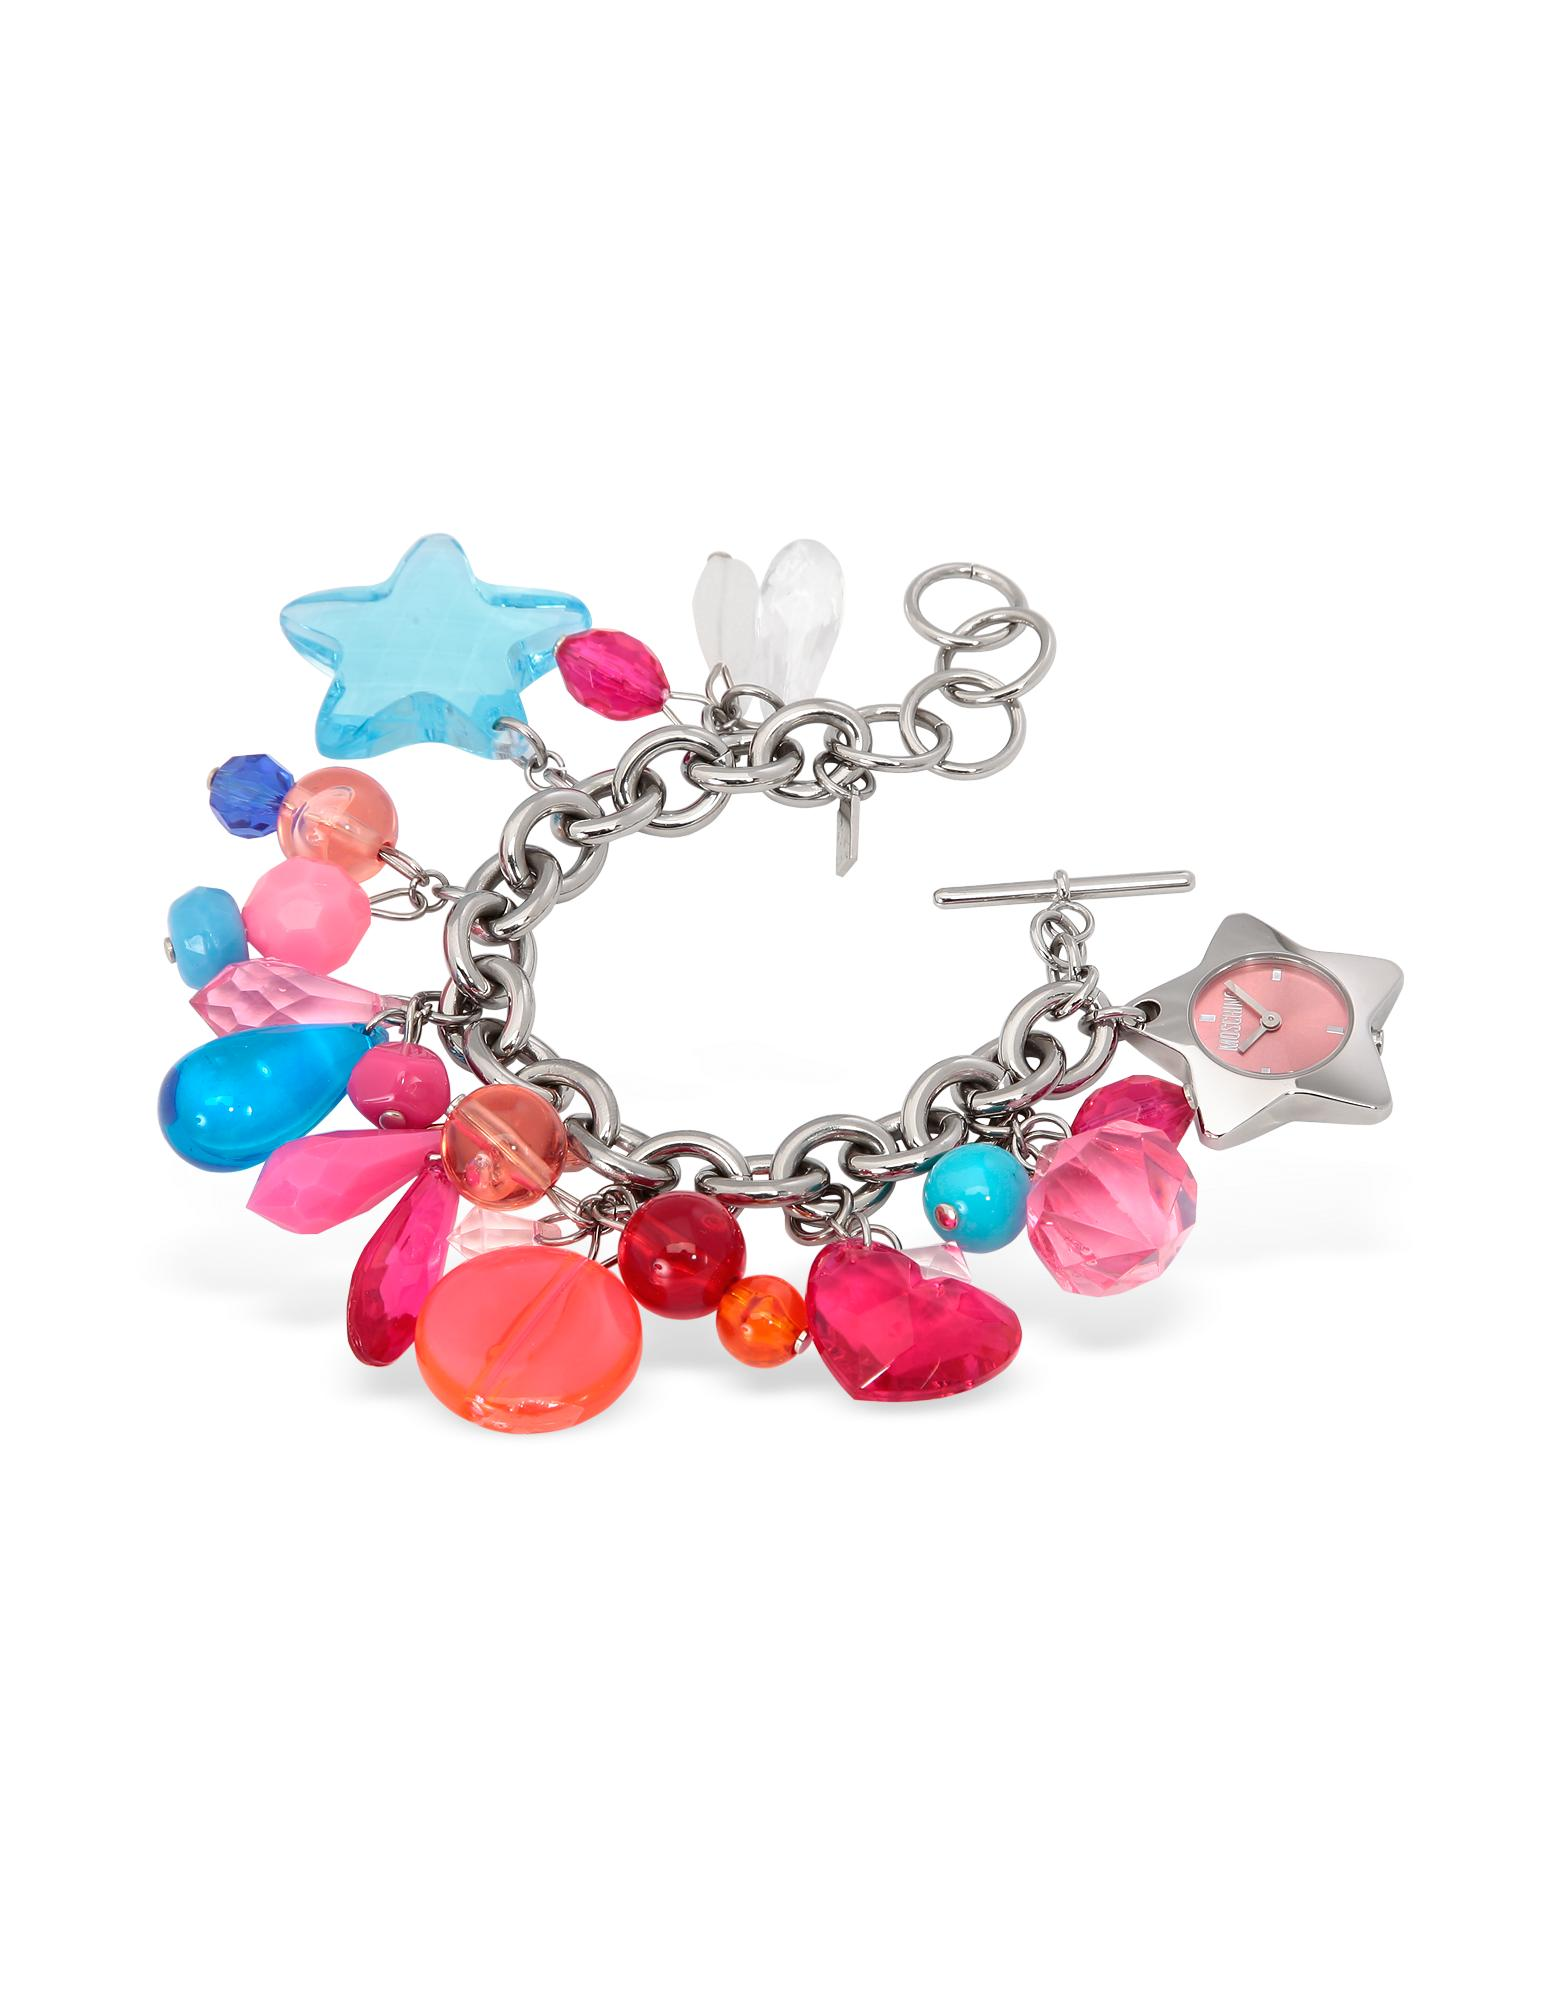 Moschino  Time For Holiday - Pink Stainless Steel Charm Bracelet Watch